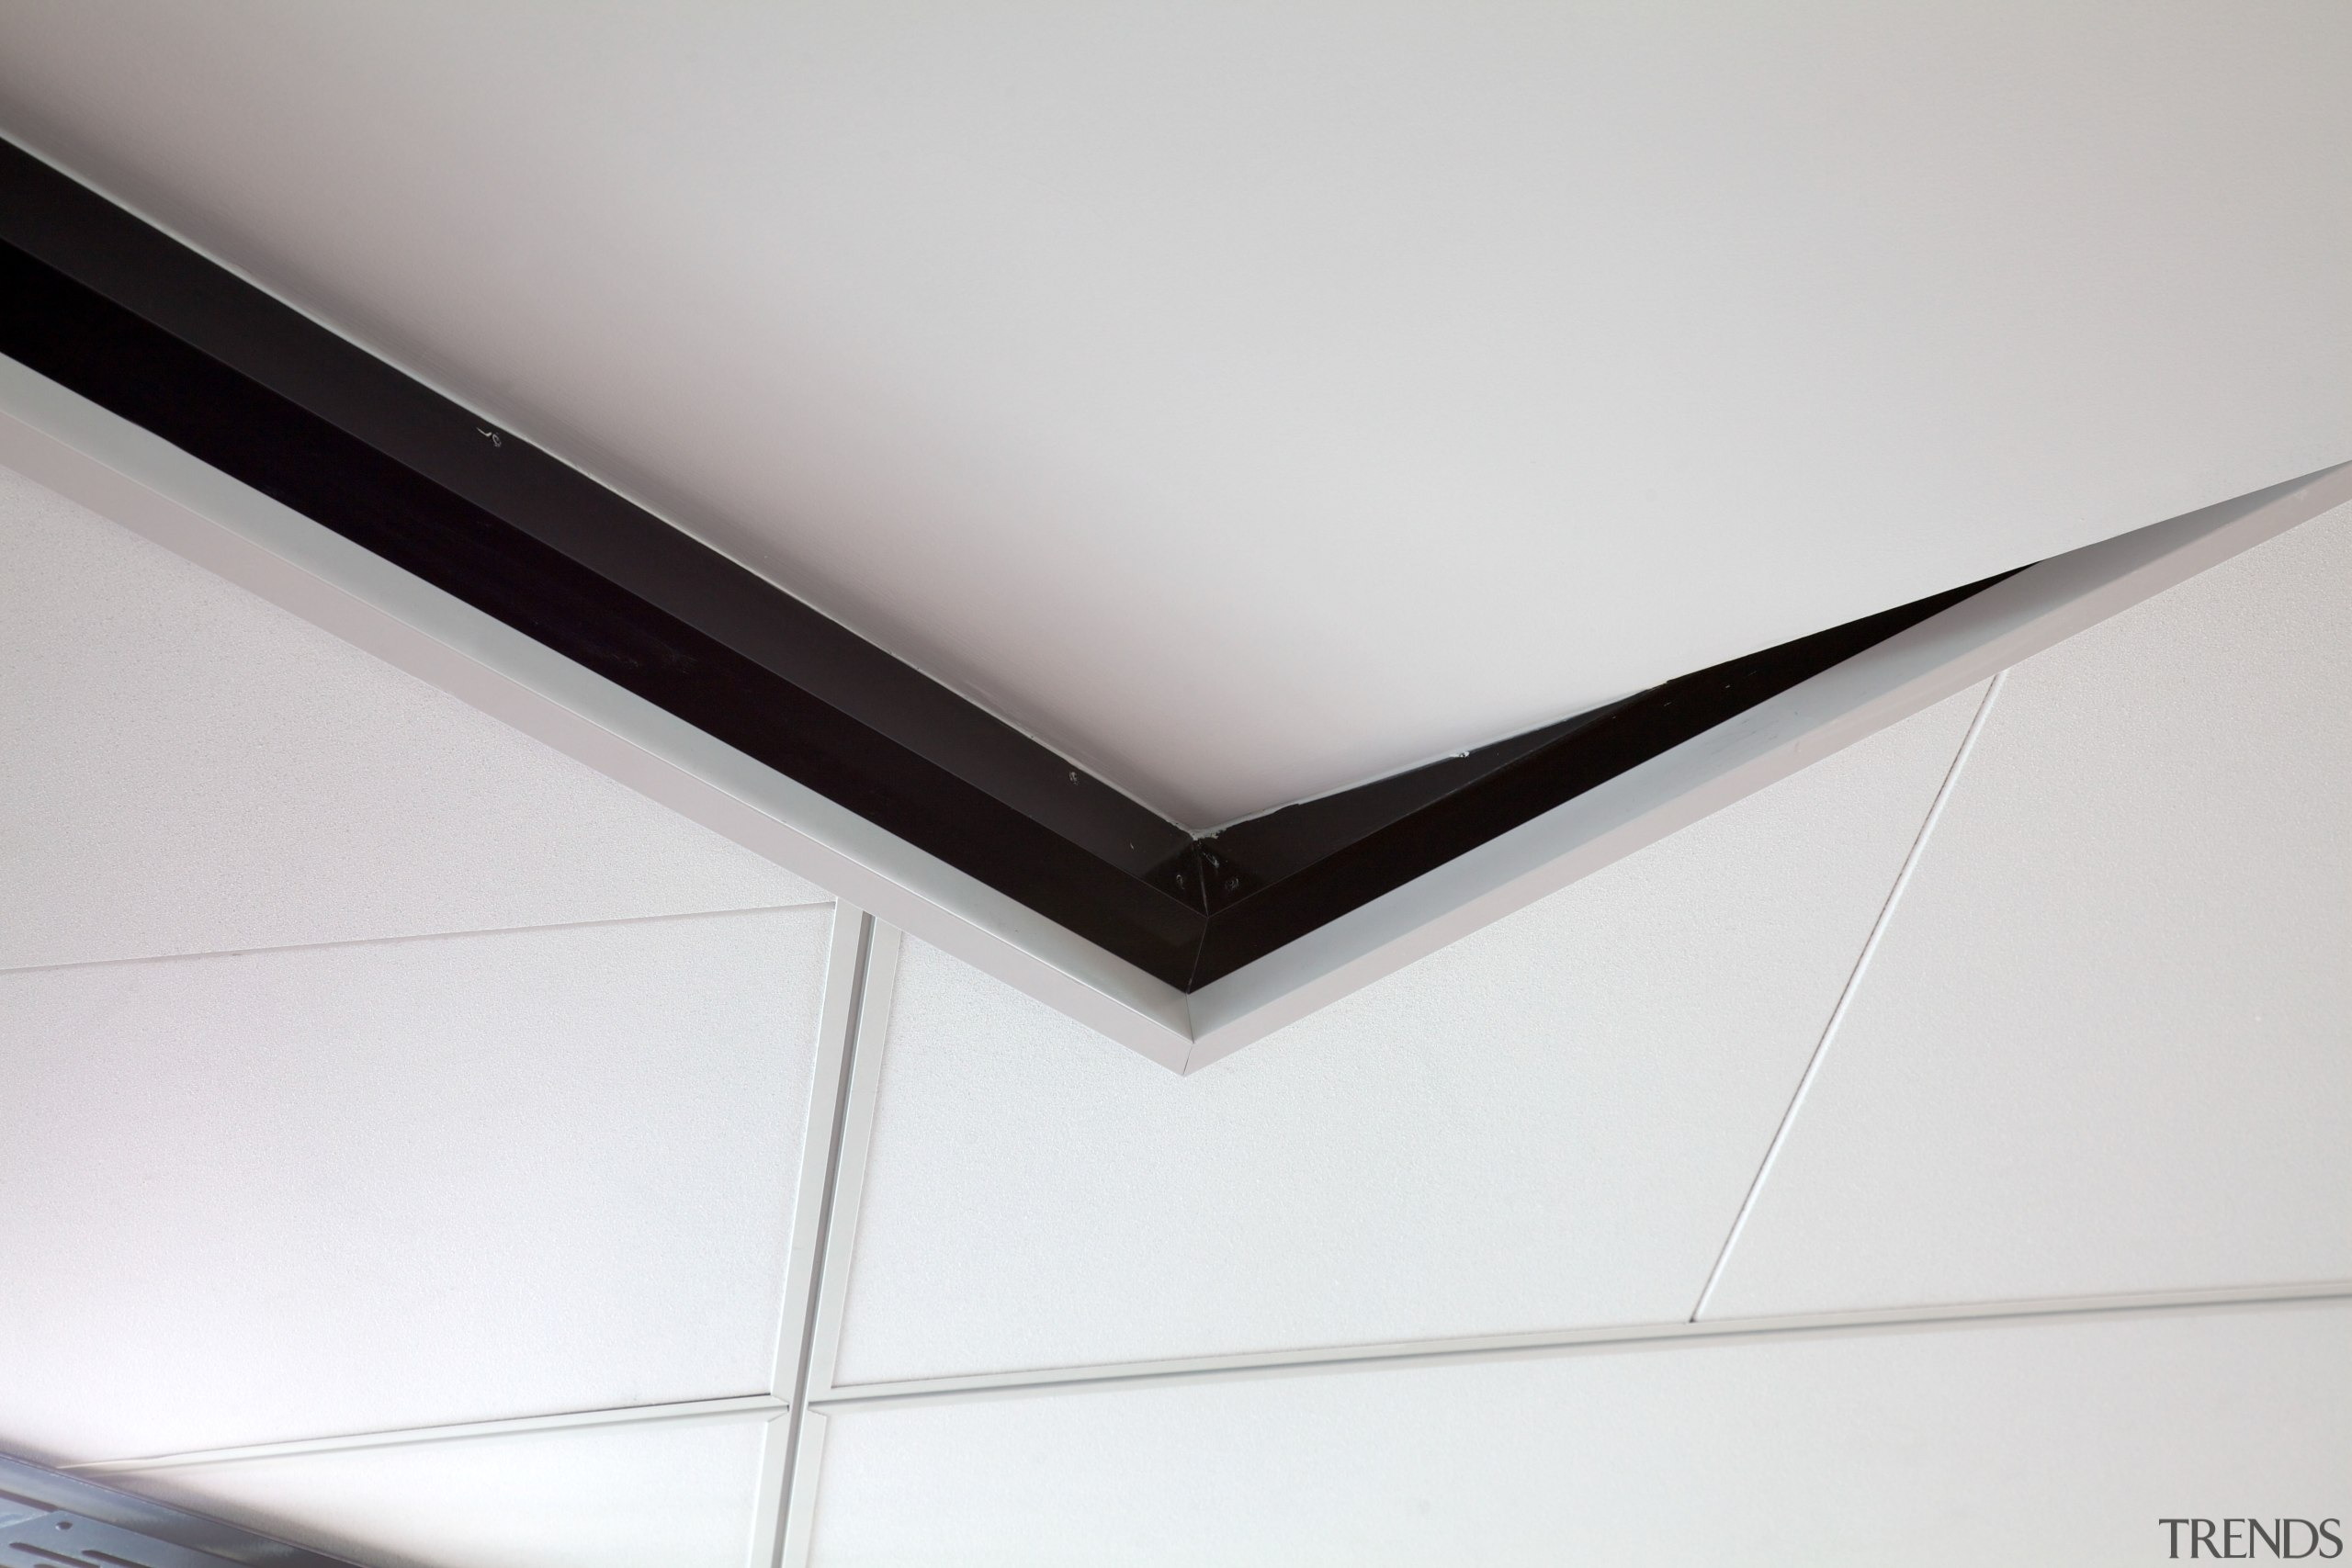 Highly durable acoustic ceiling with distinctive design-driven features angle, ceiling, daylighting, light, line, product design, gray, white